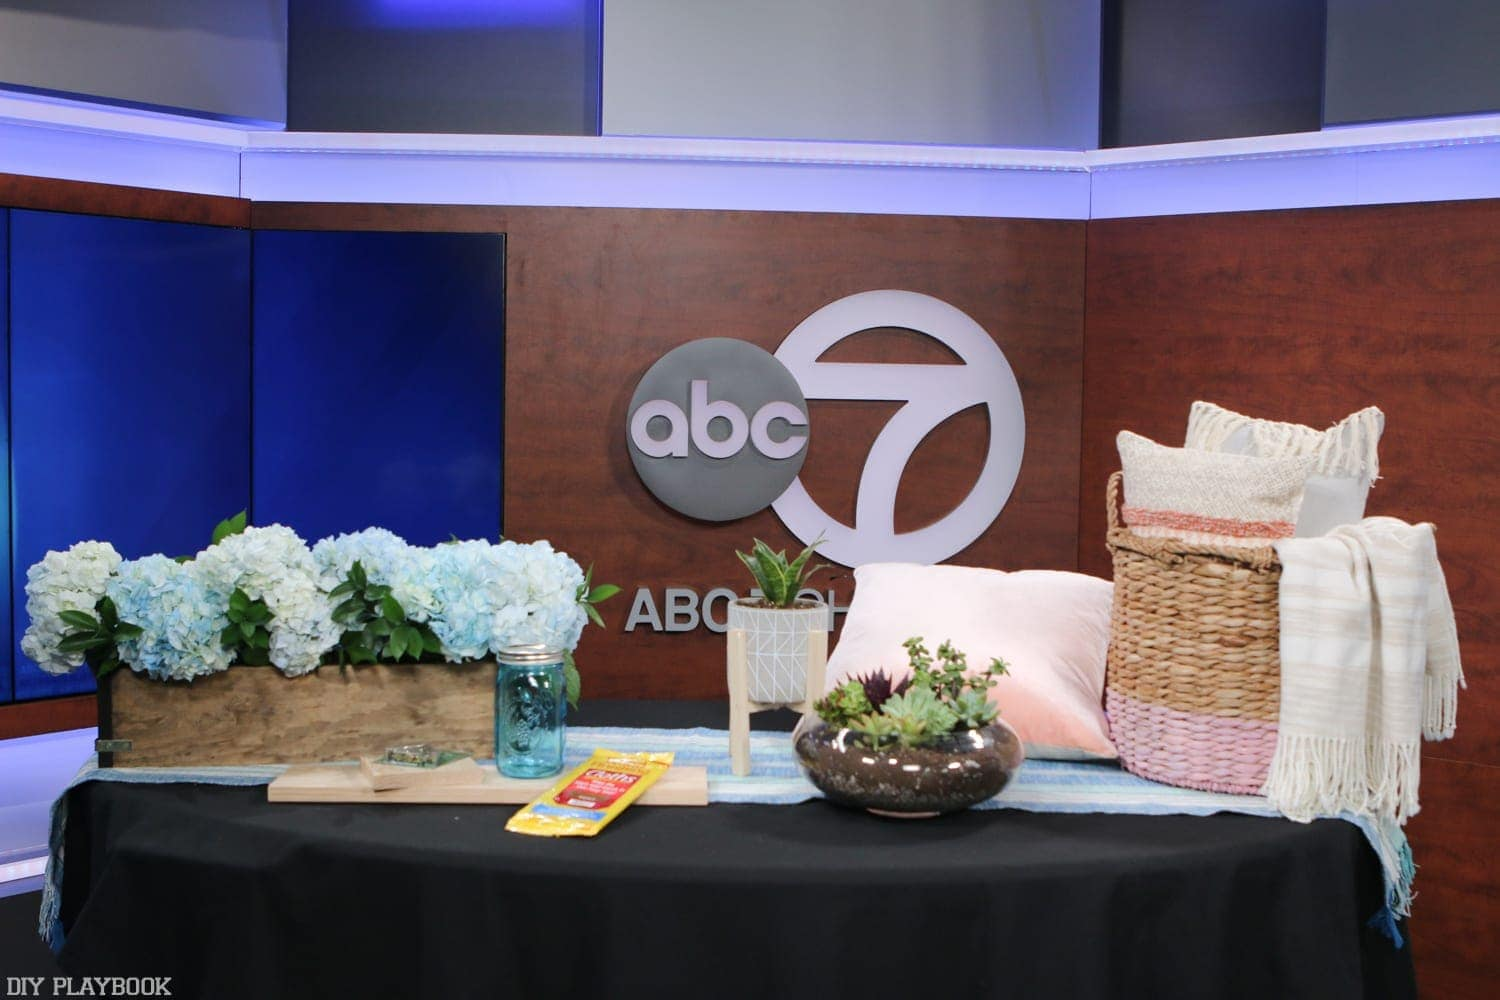 DIY Playbook was featured on ABC & News and we couldn't be more thankful for your love and support!